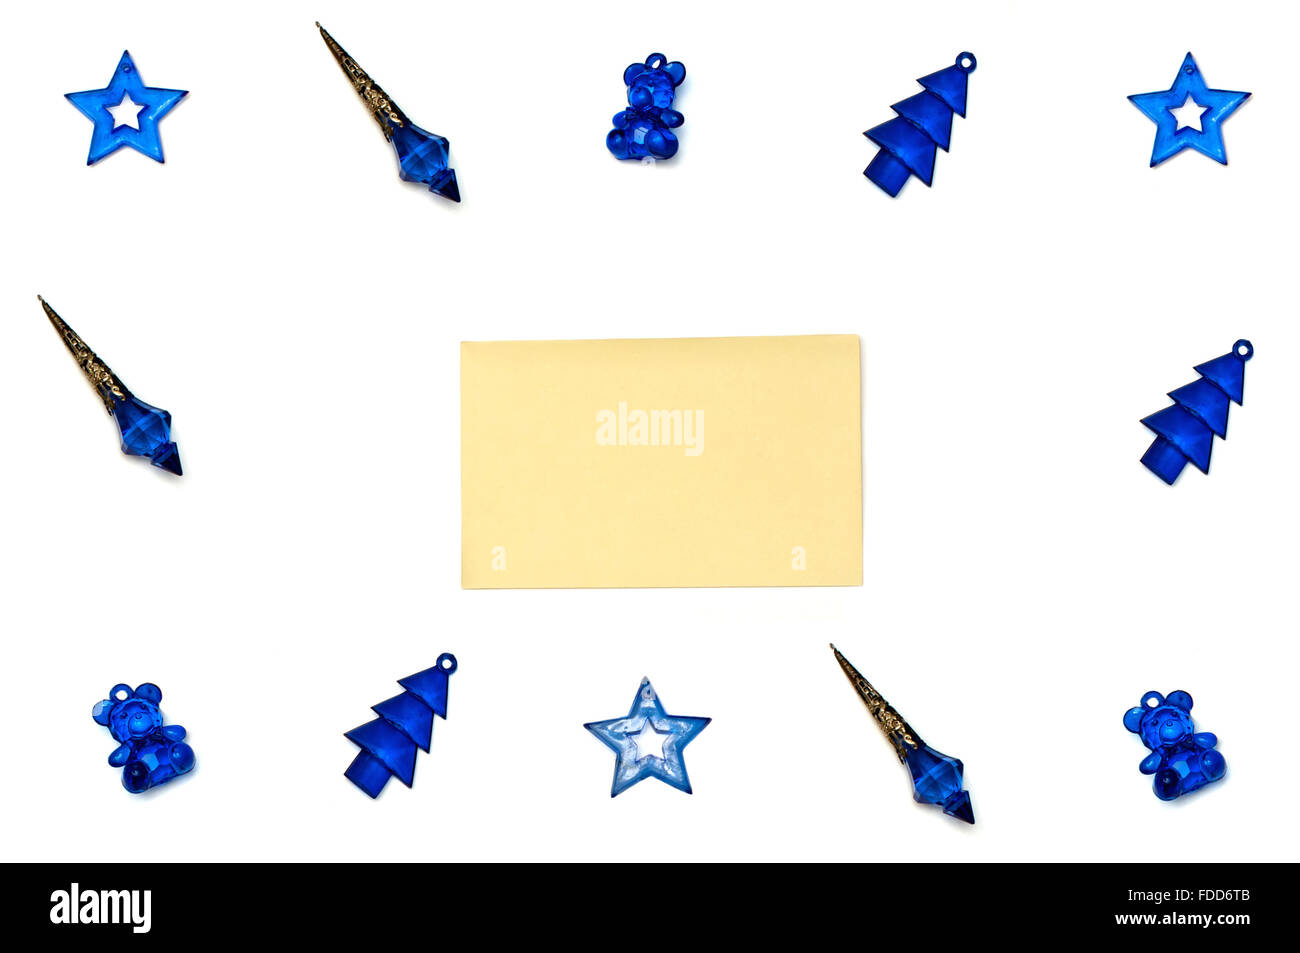 Isolated blue Christmas tree toys on white background Stock Photo